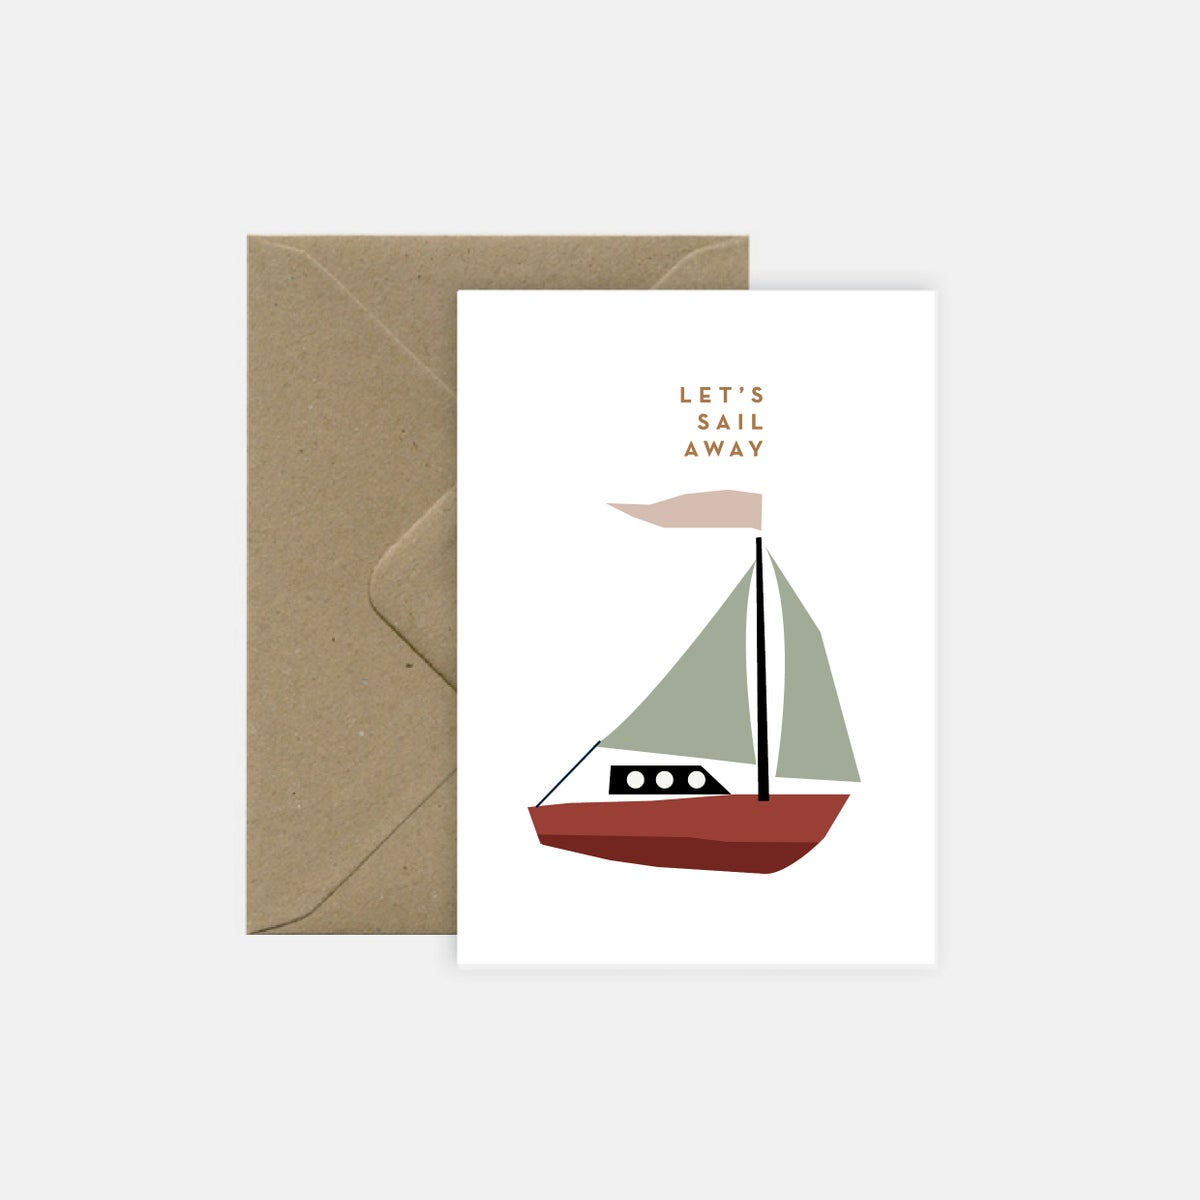 Image of Let's sail away